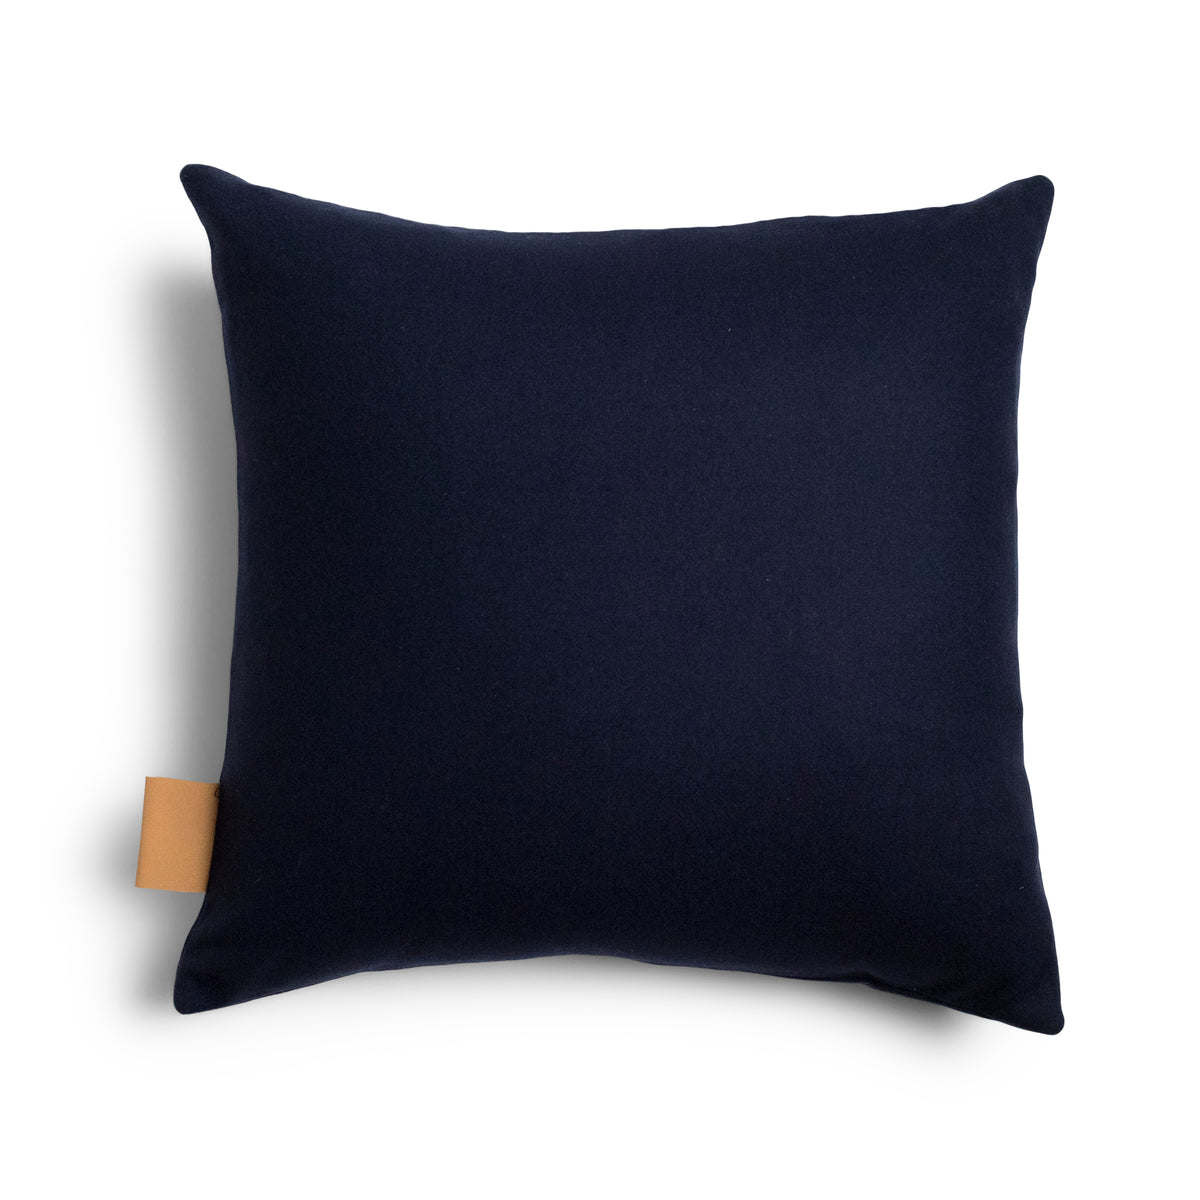 Frankie Square Cushion Cover - Navy